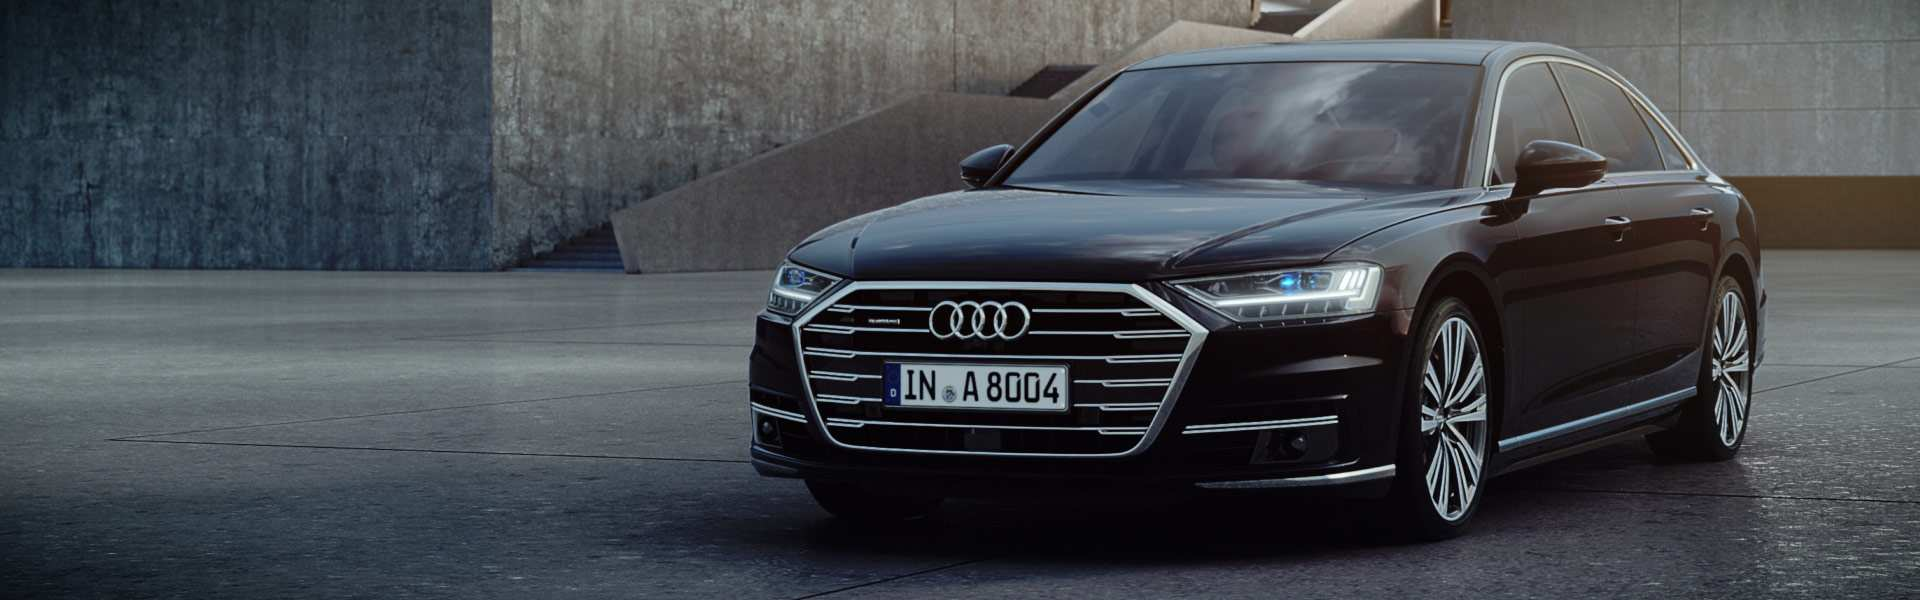 53 New 2020 Audi A8 Reviews